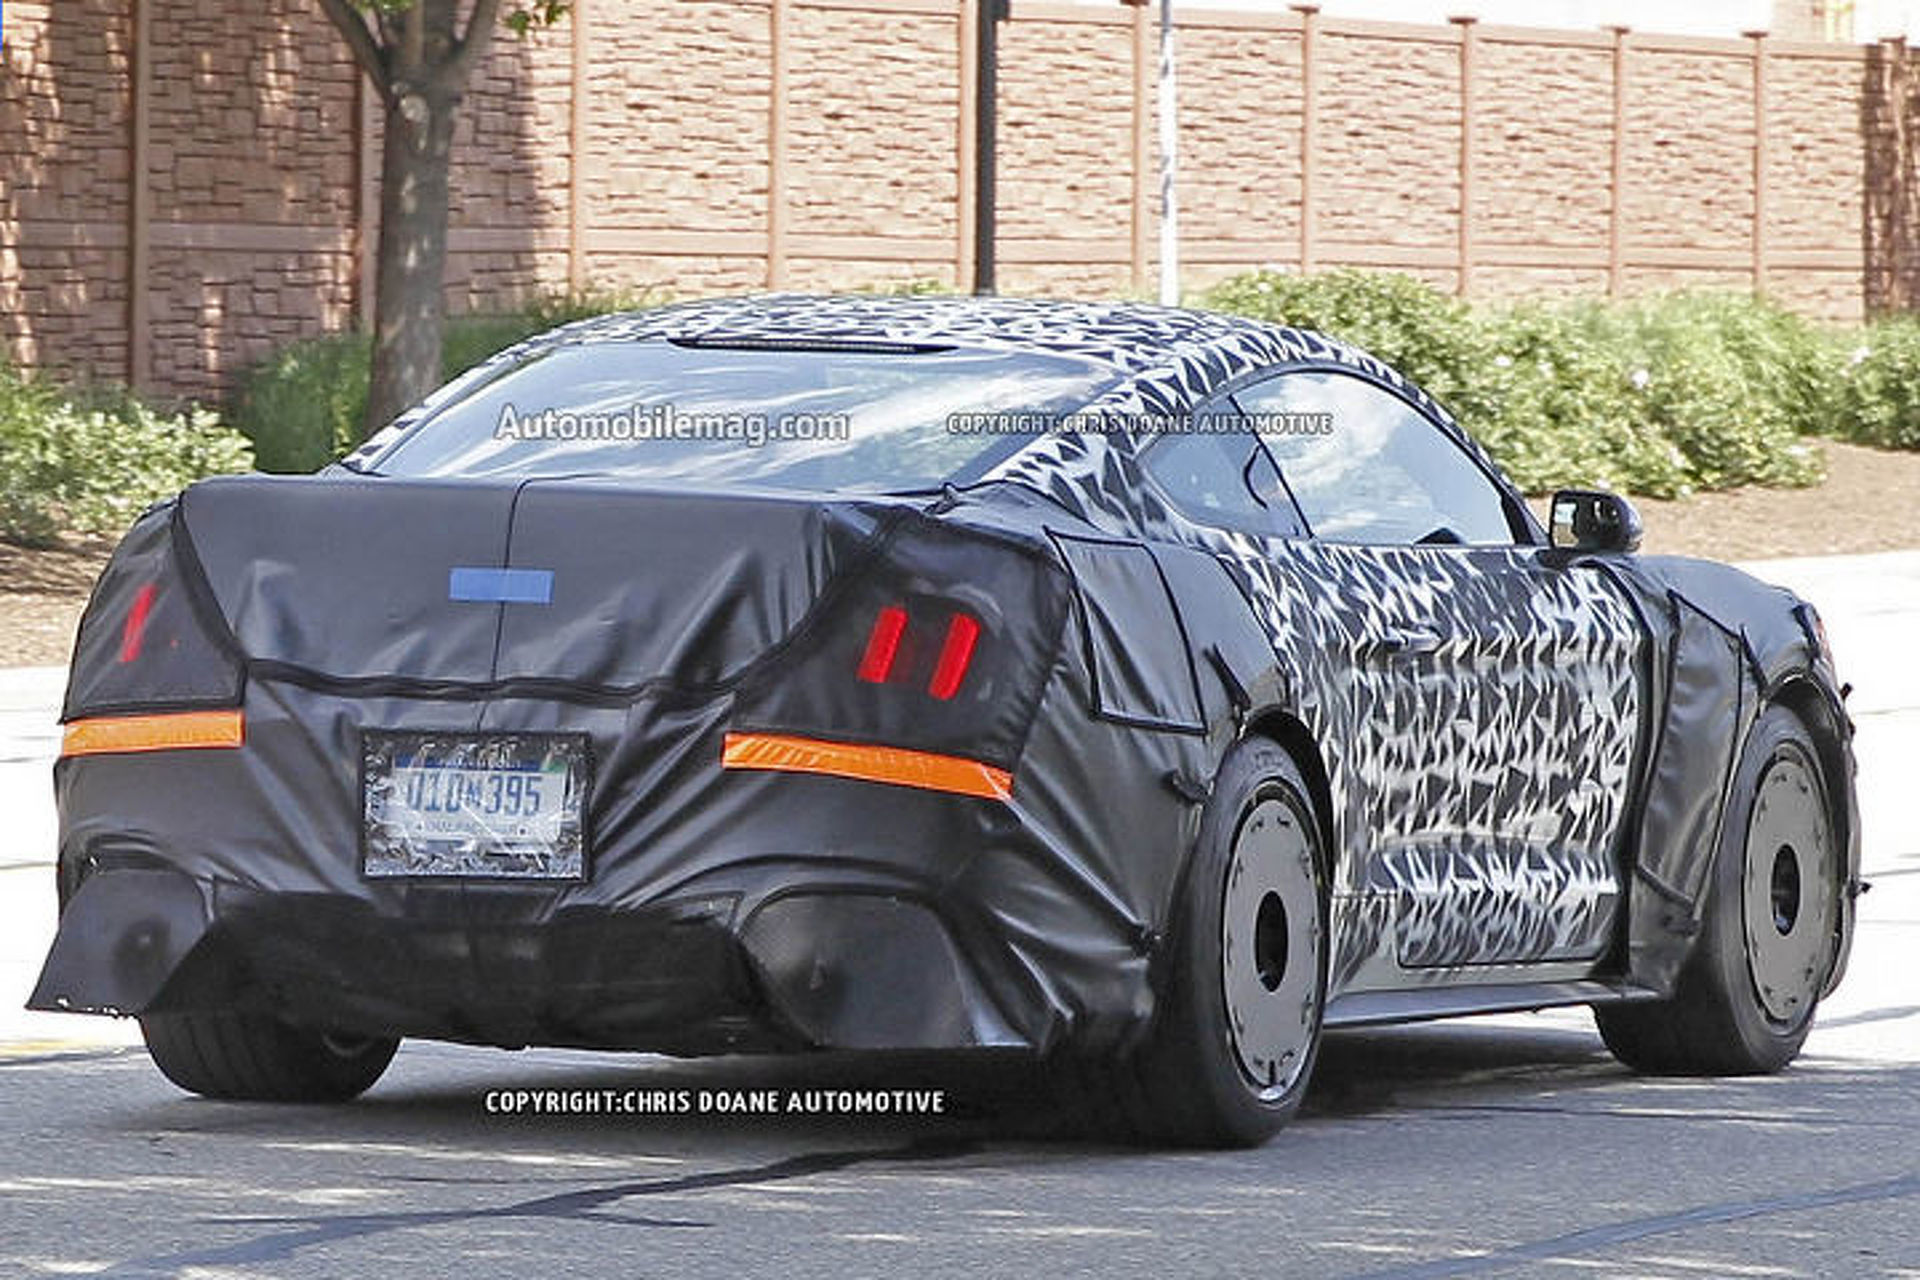 Ford Developing a Mustang SVT, But What's Under the Hood?